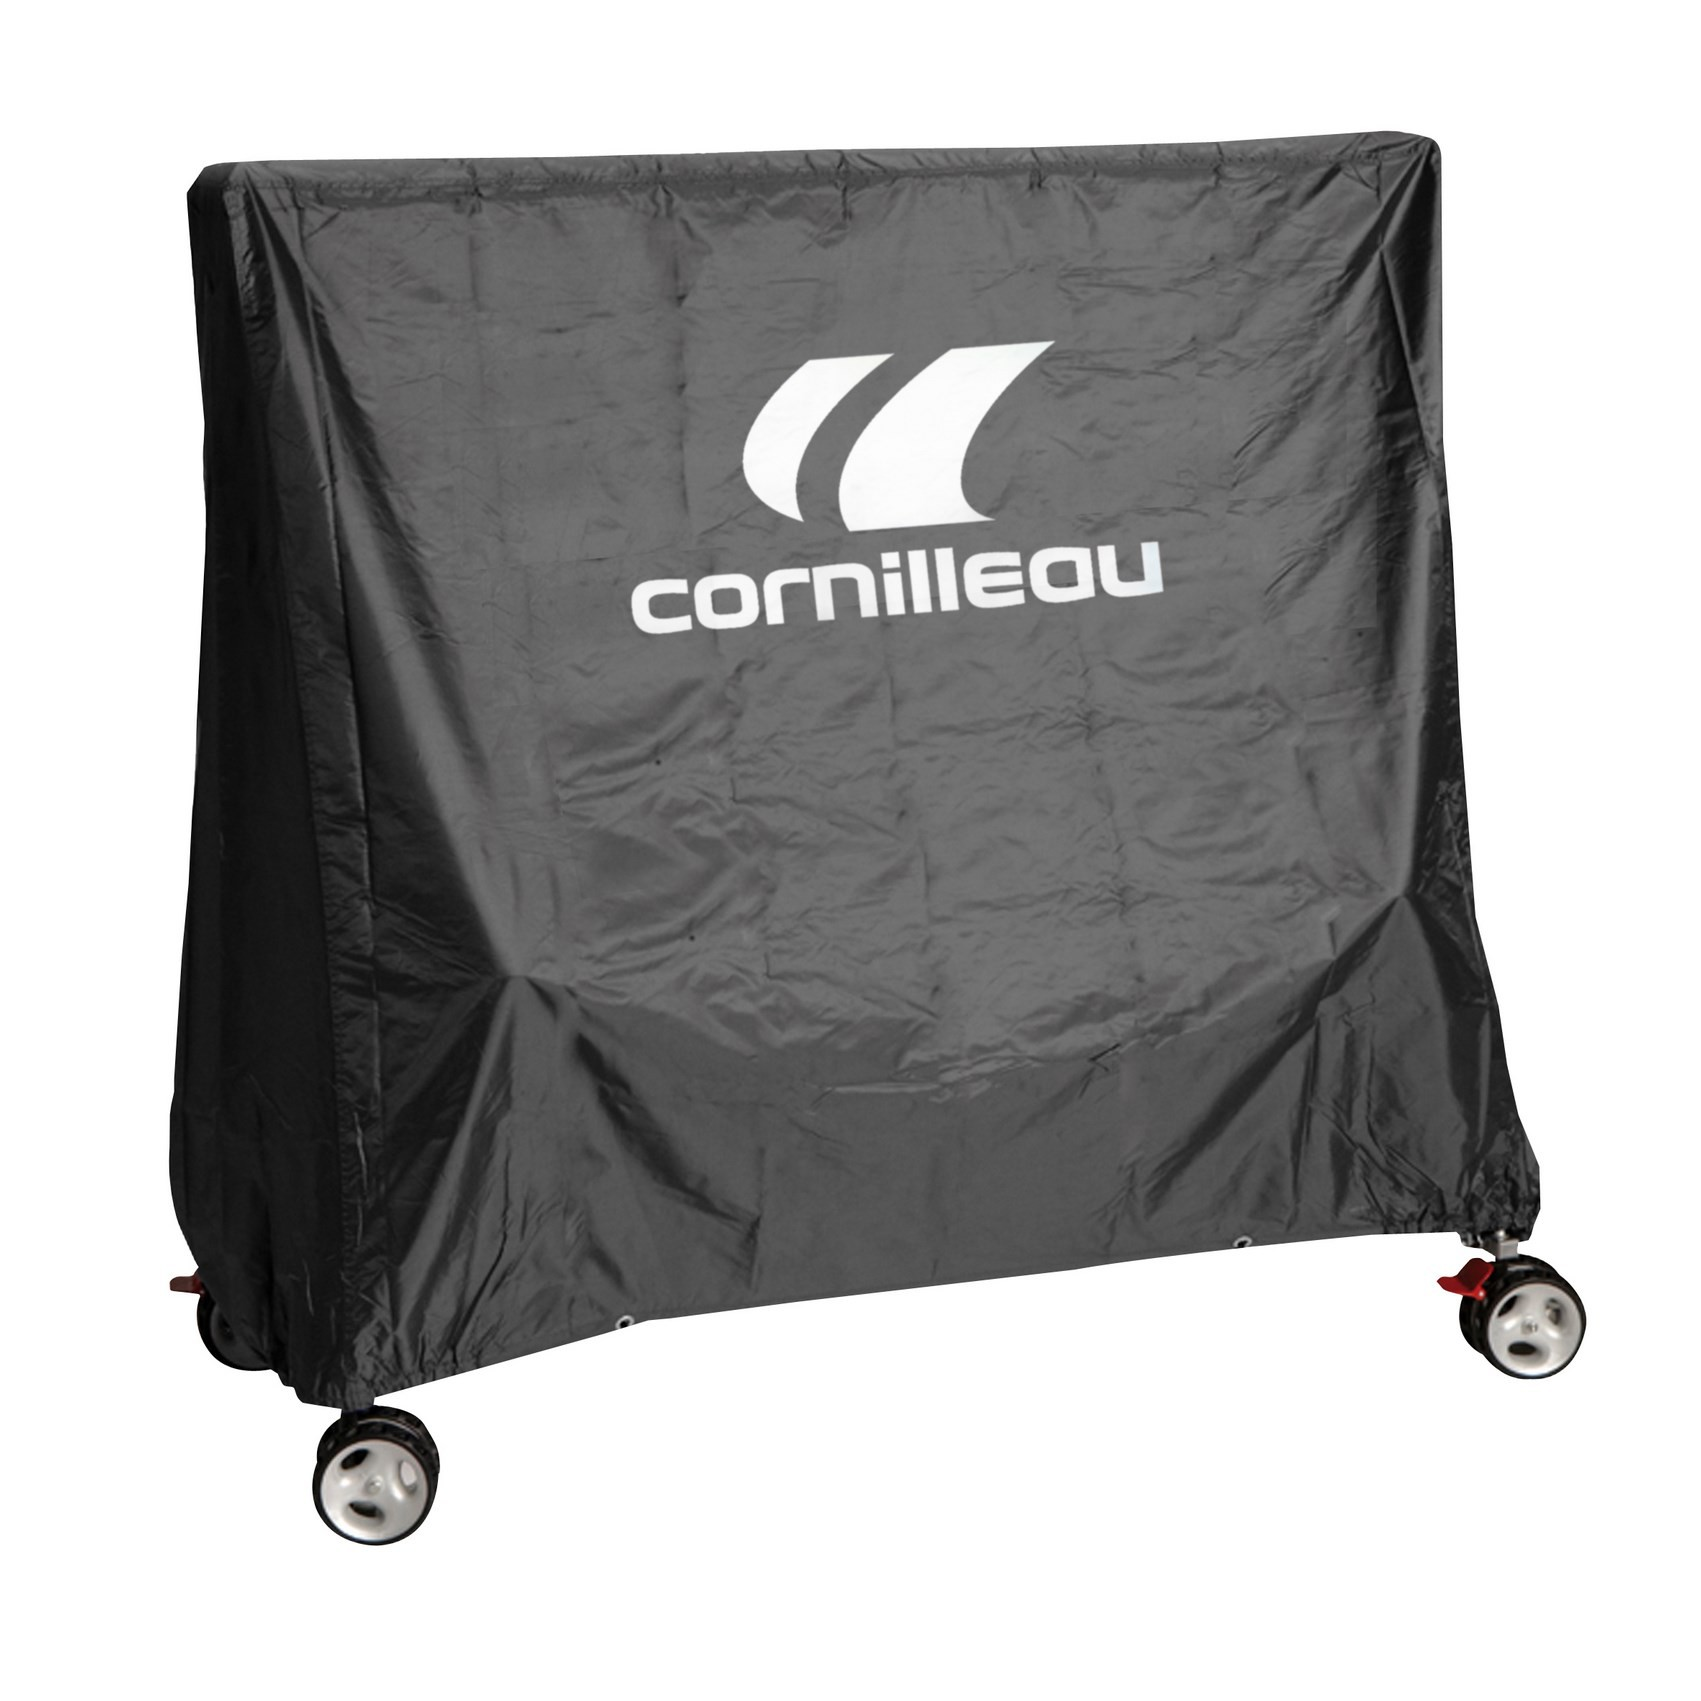 Cornilleau housse de table premium grise housses for Housse table de ping pong exterieur